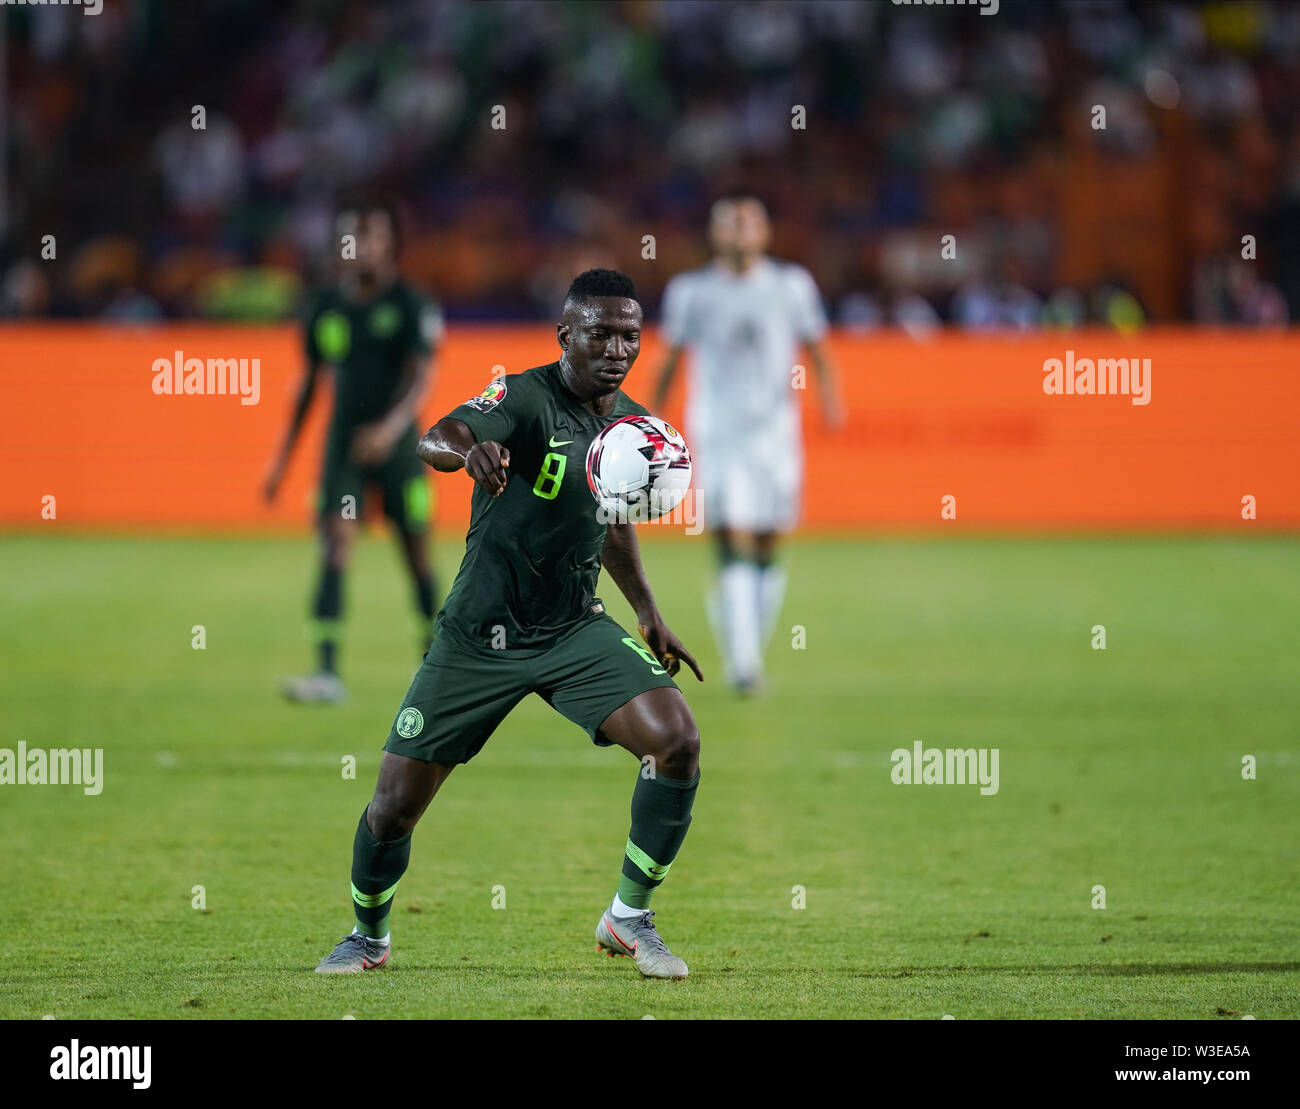 Cairo, Algeria, Egypt. 14th July, 2019. FRANCE OUT July 14, 2019: Oghenekaro Peter Etebo of Nigeria during the 2019 African Cup of Nations match between Algeria and Nigeria at the Cairo International Stadium in Cairo, Egypt. Ulrik Pedersen/CSM/Alamy Live News - Stock Image